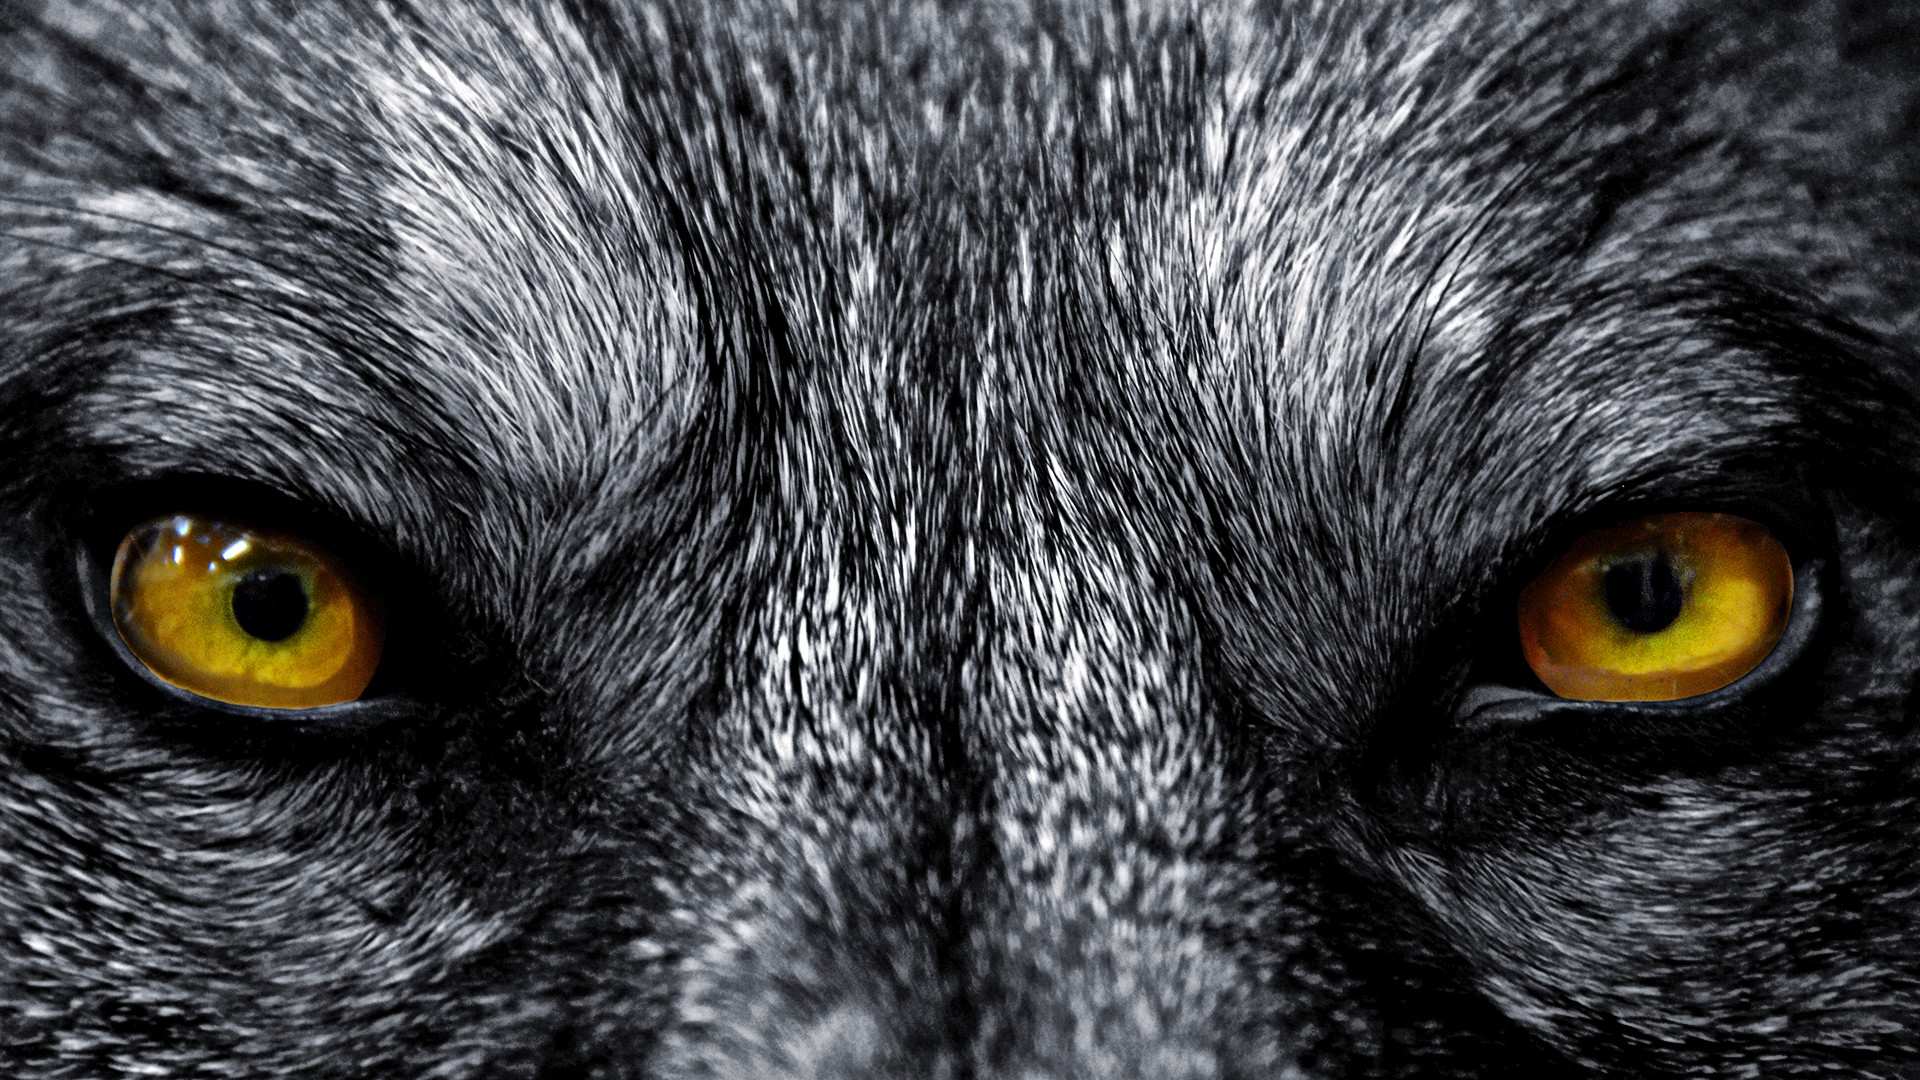 … wolf wallpapers best wallpapers …